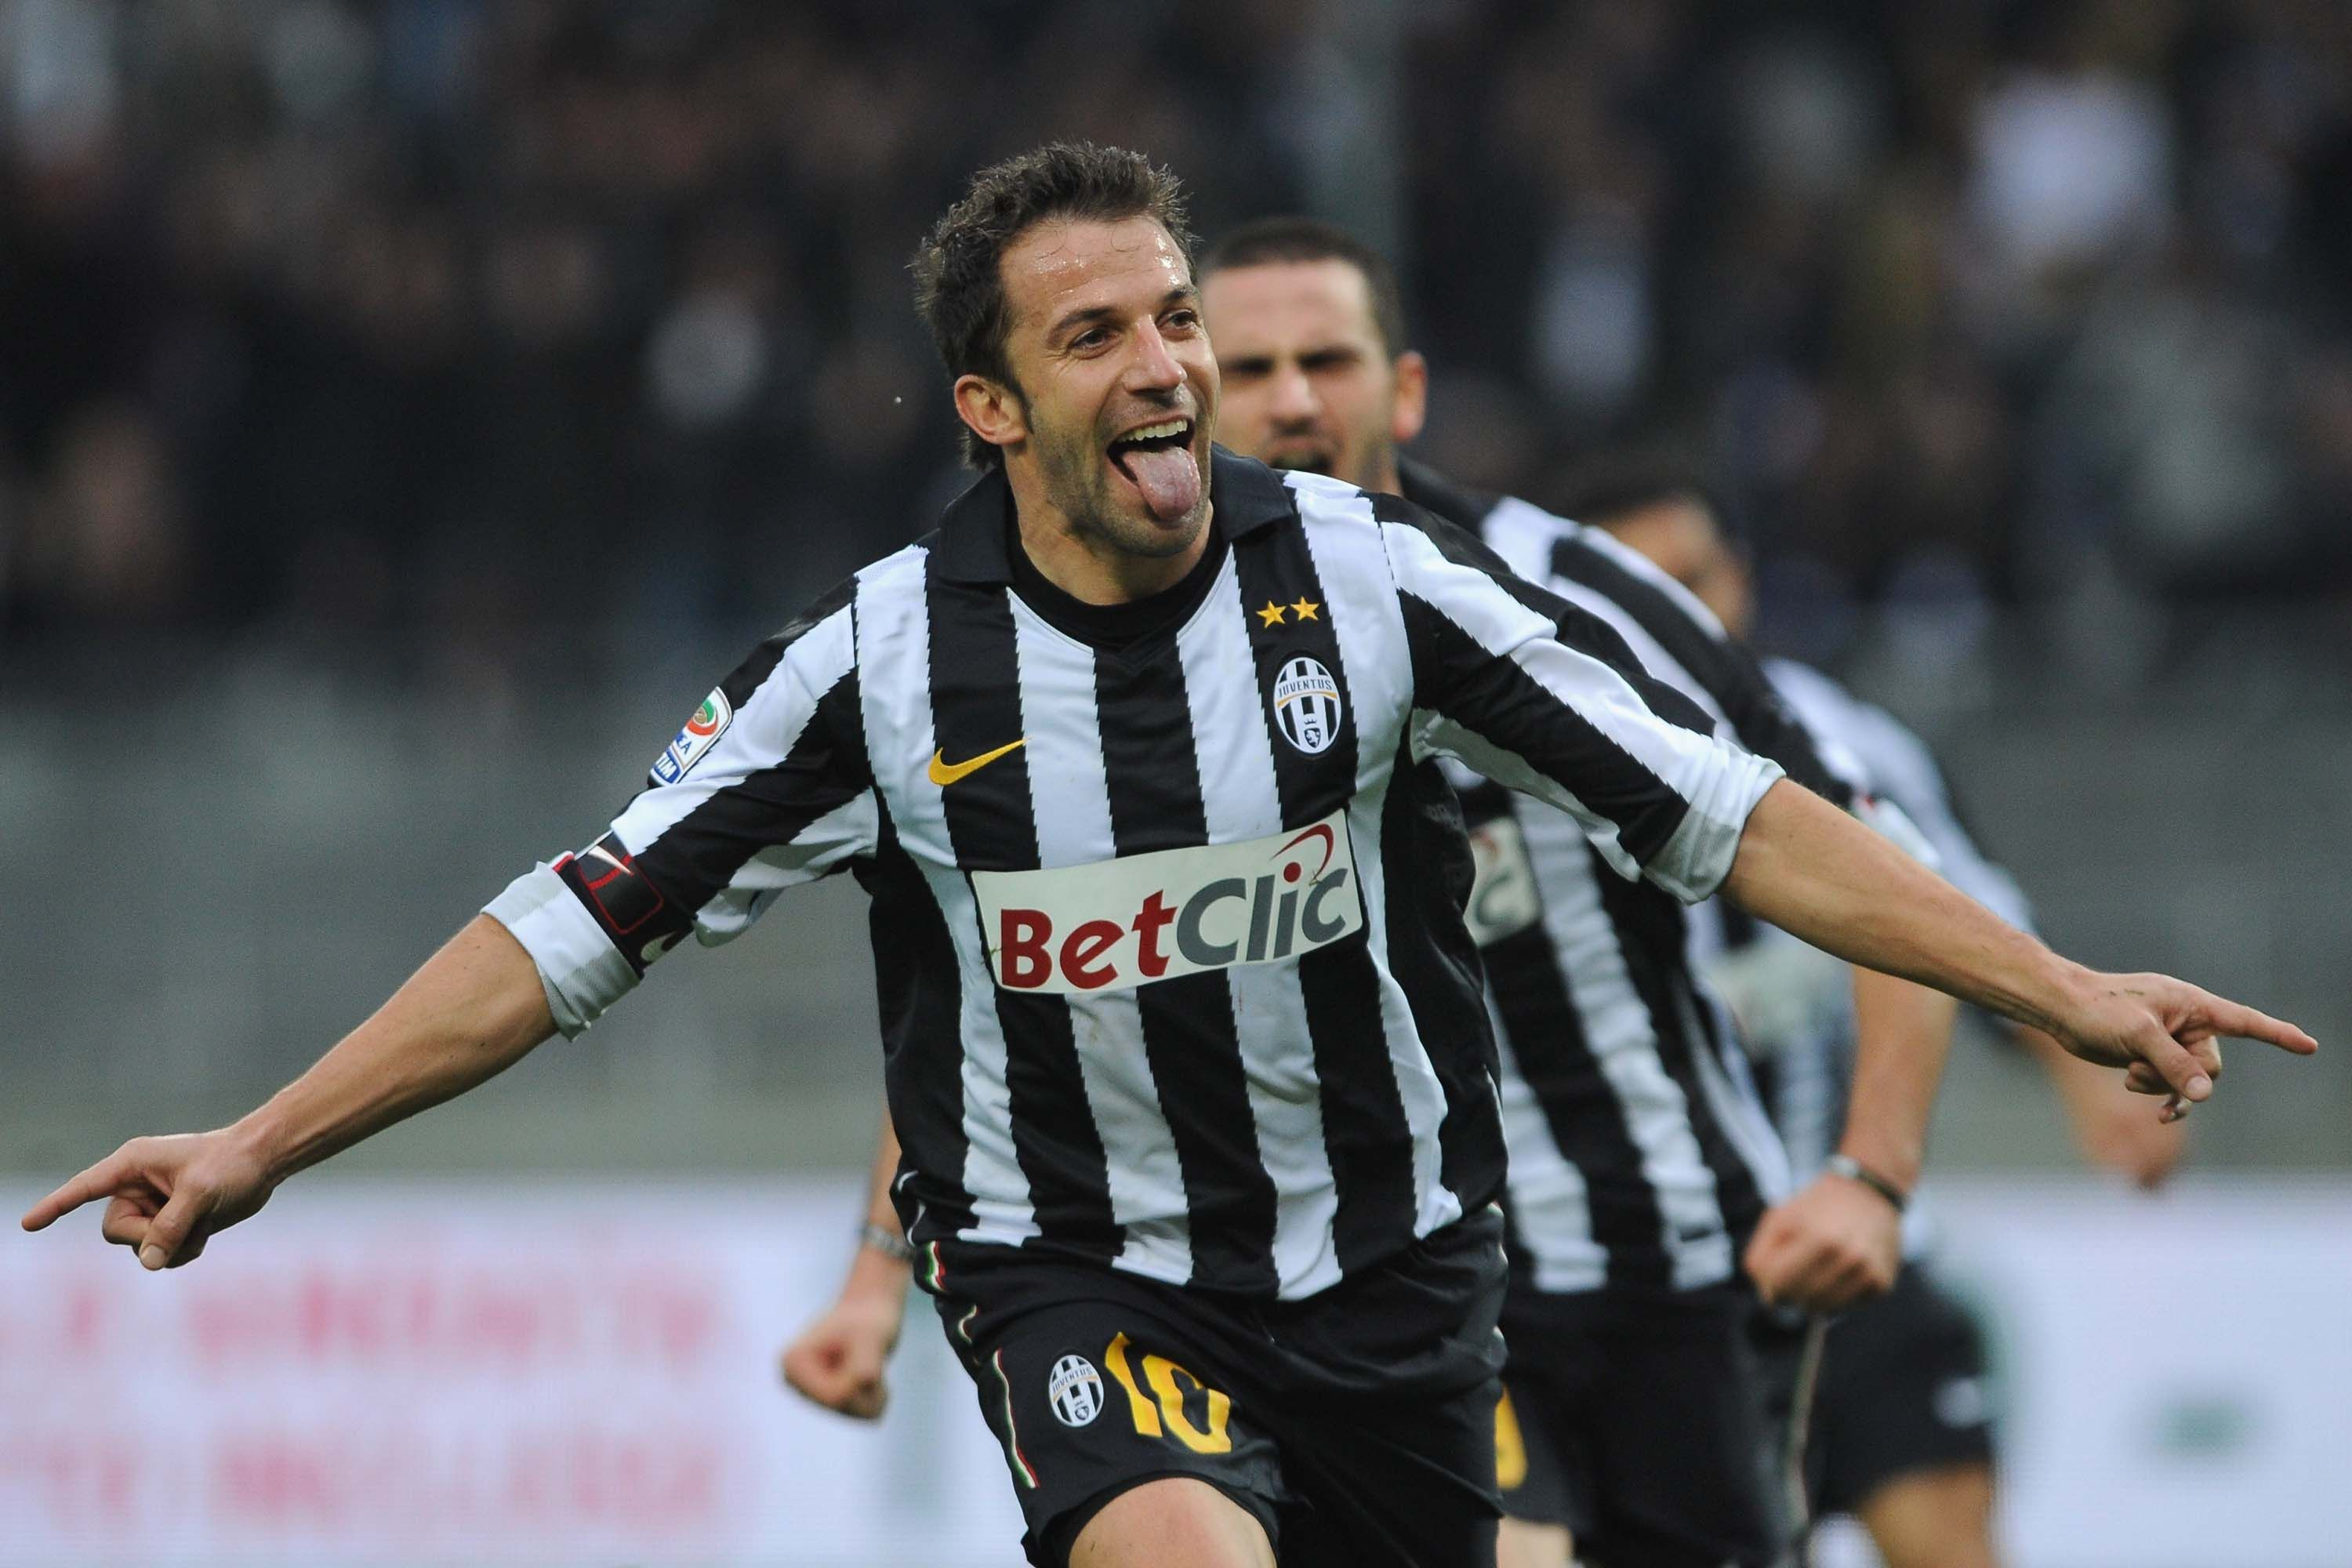 TURIN, ITALY - NOVEMBER 07:  Alessandro Del Piero of Juventus FC celebrates his goal during the Serie A match between Juventus FC and AC Cesena at Olimpico Stadium on November 7, 2010 in Turin, Italy.  (Photo by Valerio Pennicino/Getty Images)